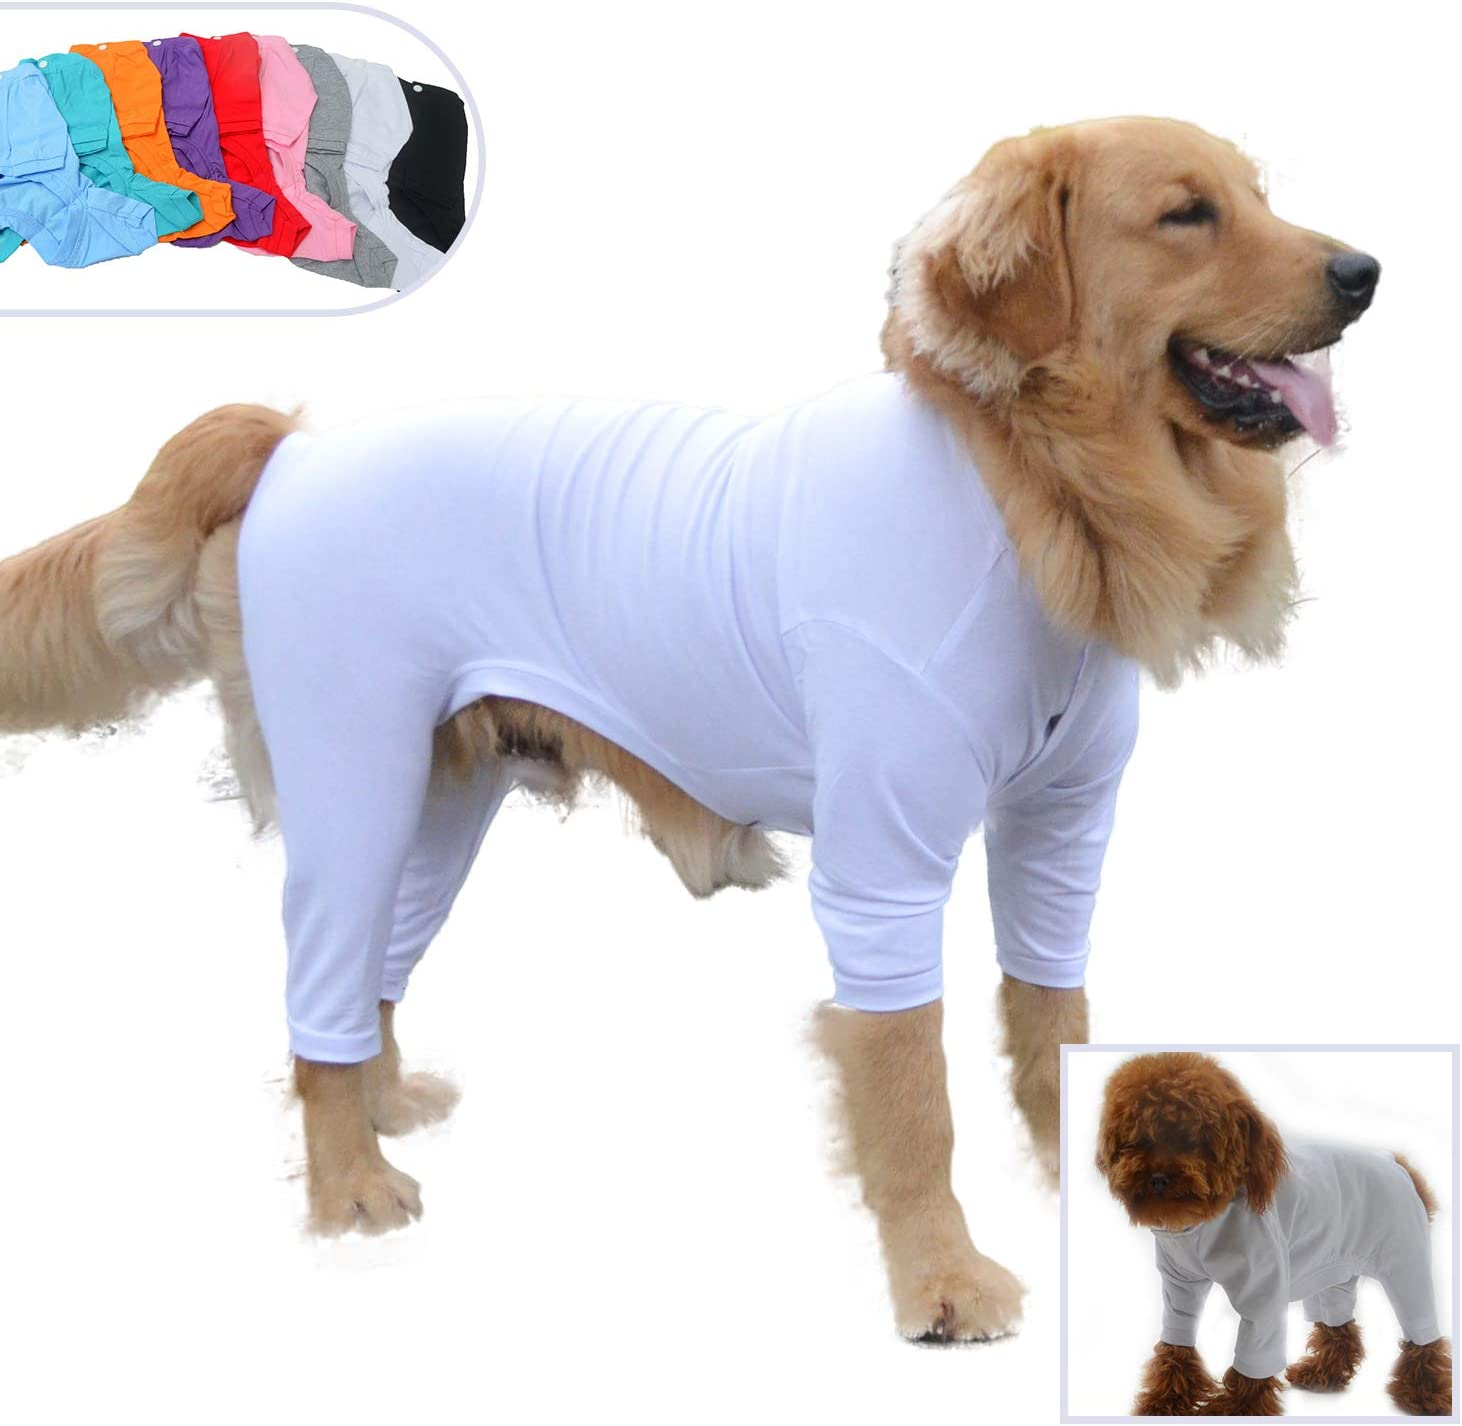 Pure Cotton Dog Jumpsuits 4 Legs Dog Onesies T-Shirt Stylish PJS Puppy Costume for Large Medium Small Dogs Black L lovelonglong Four Feet Dog Lightweight Pajamas